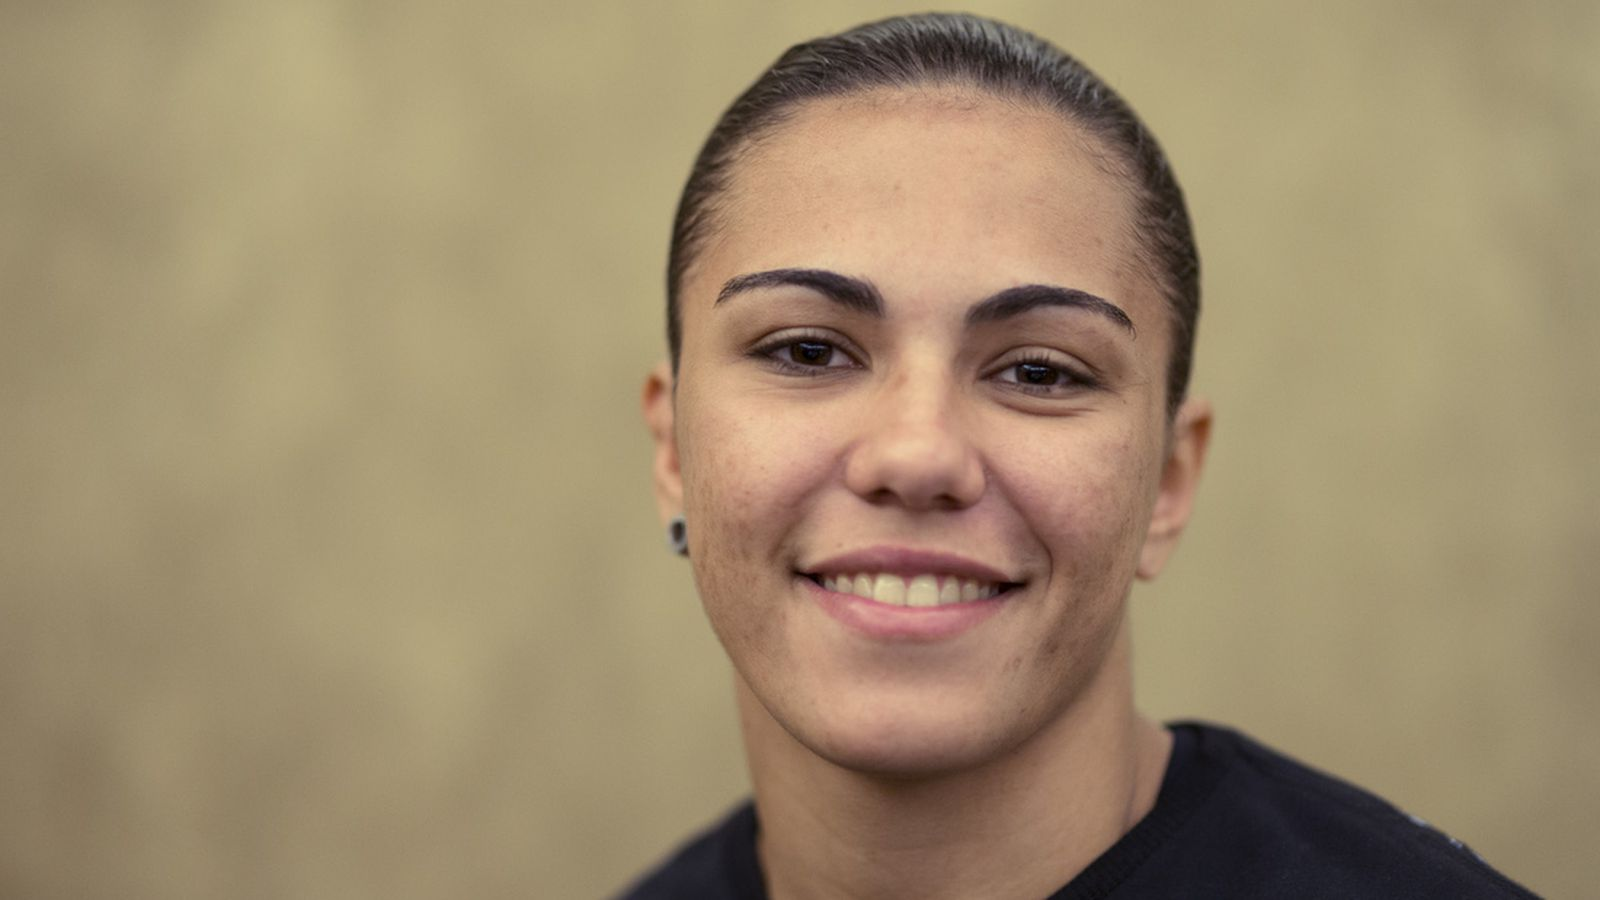 jessica andrade not worried rosi sexton s experience at ufn jessica andrade not worried rosi sexton s experience at ufn 30 mma fighting